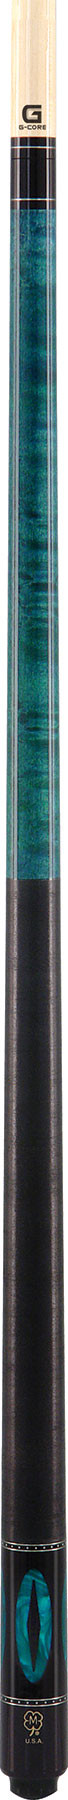 McDermott G213 G-Series Teal Pool Cue